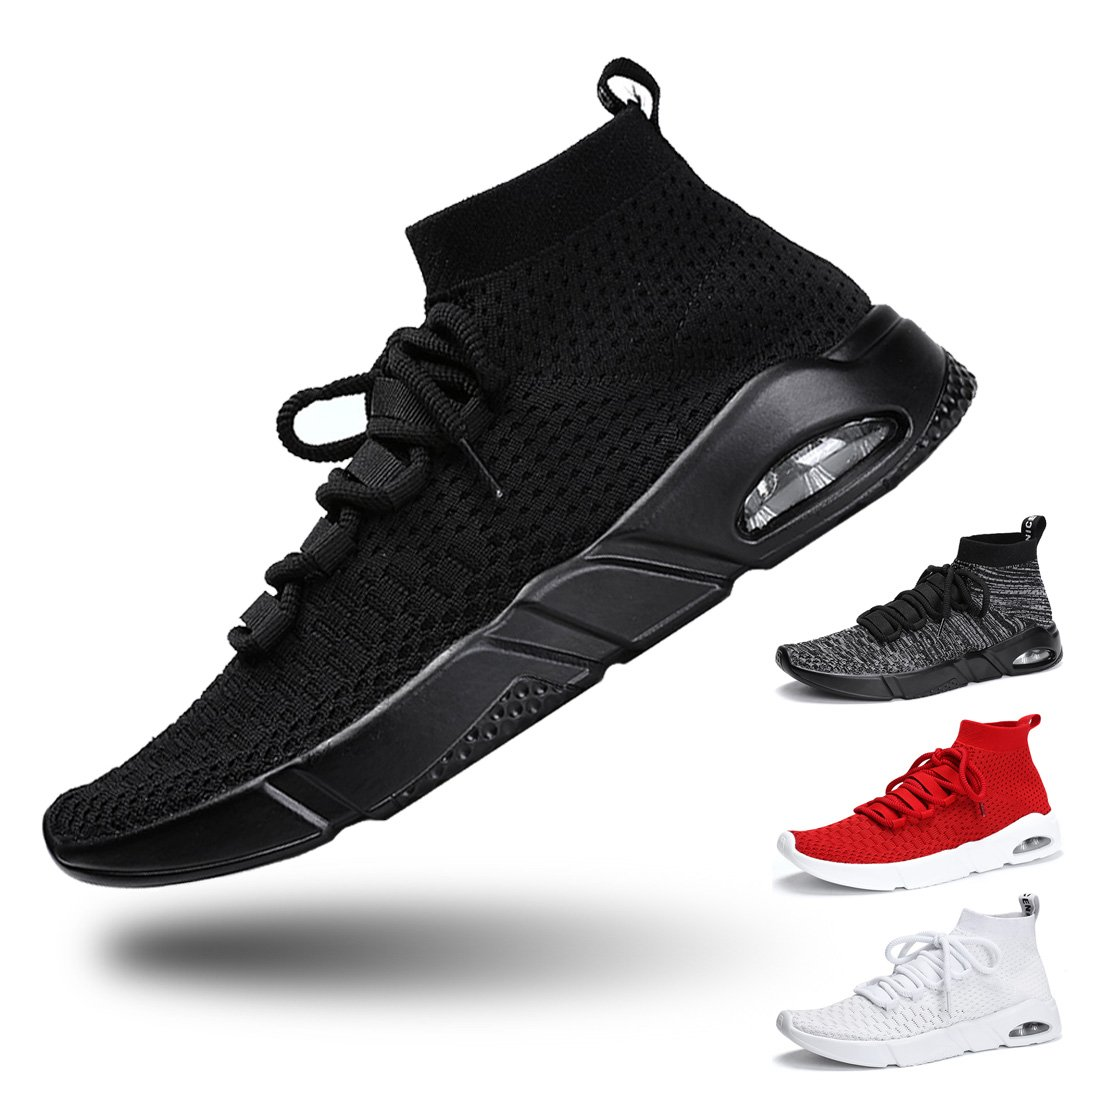 Women Walking Shoes Sport Running Sneakers Lightweight Breathable MeshShoes Casual Shoes for Women's Jogging Shopping 39-Black